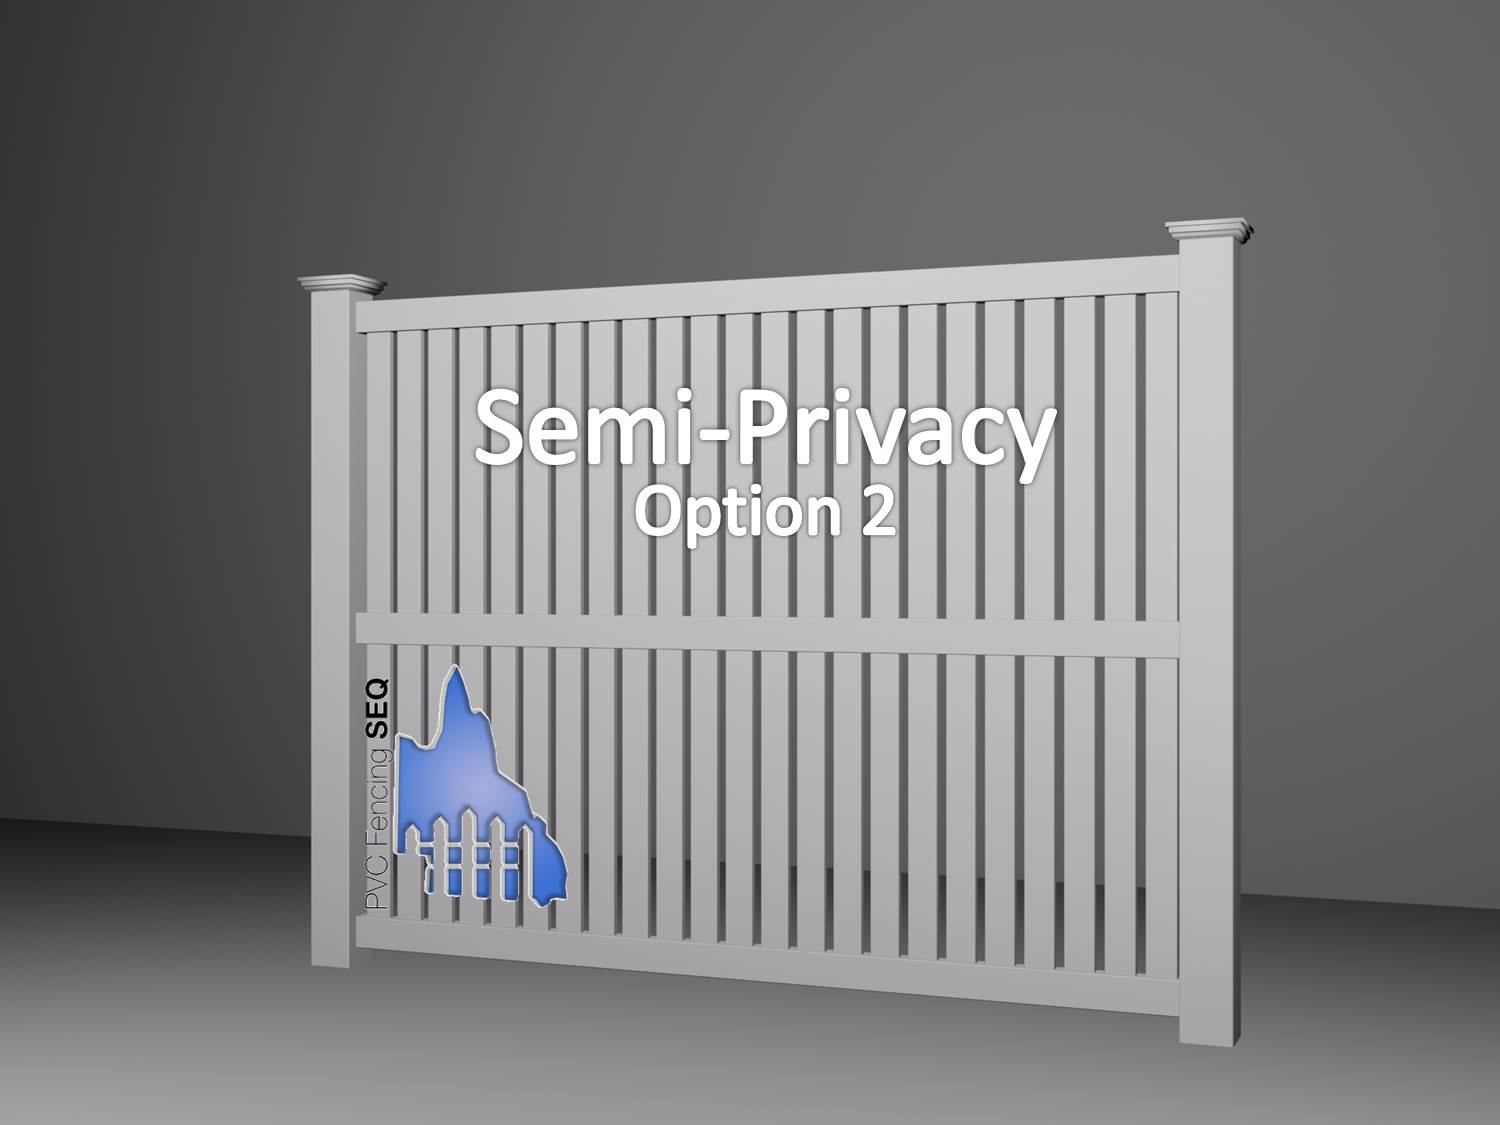 Semi-Privacy - Option 2.jpg